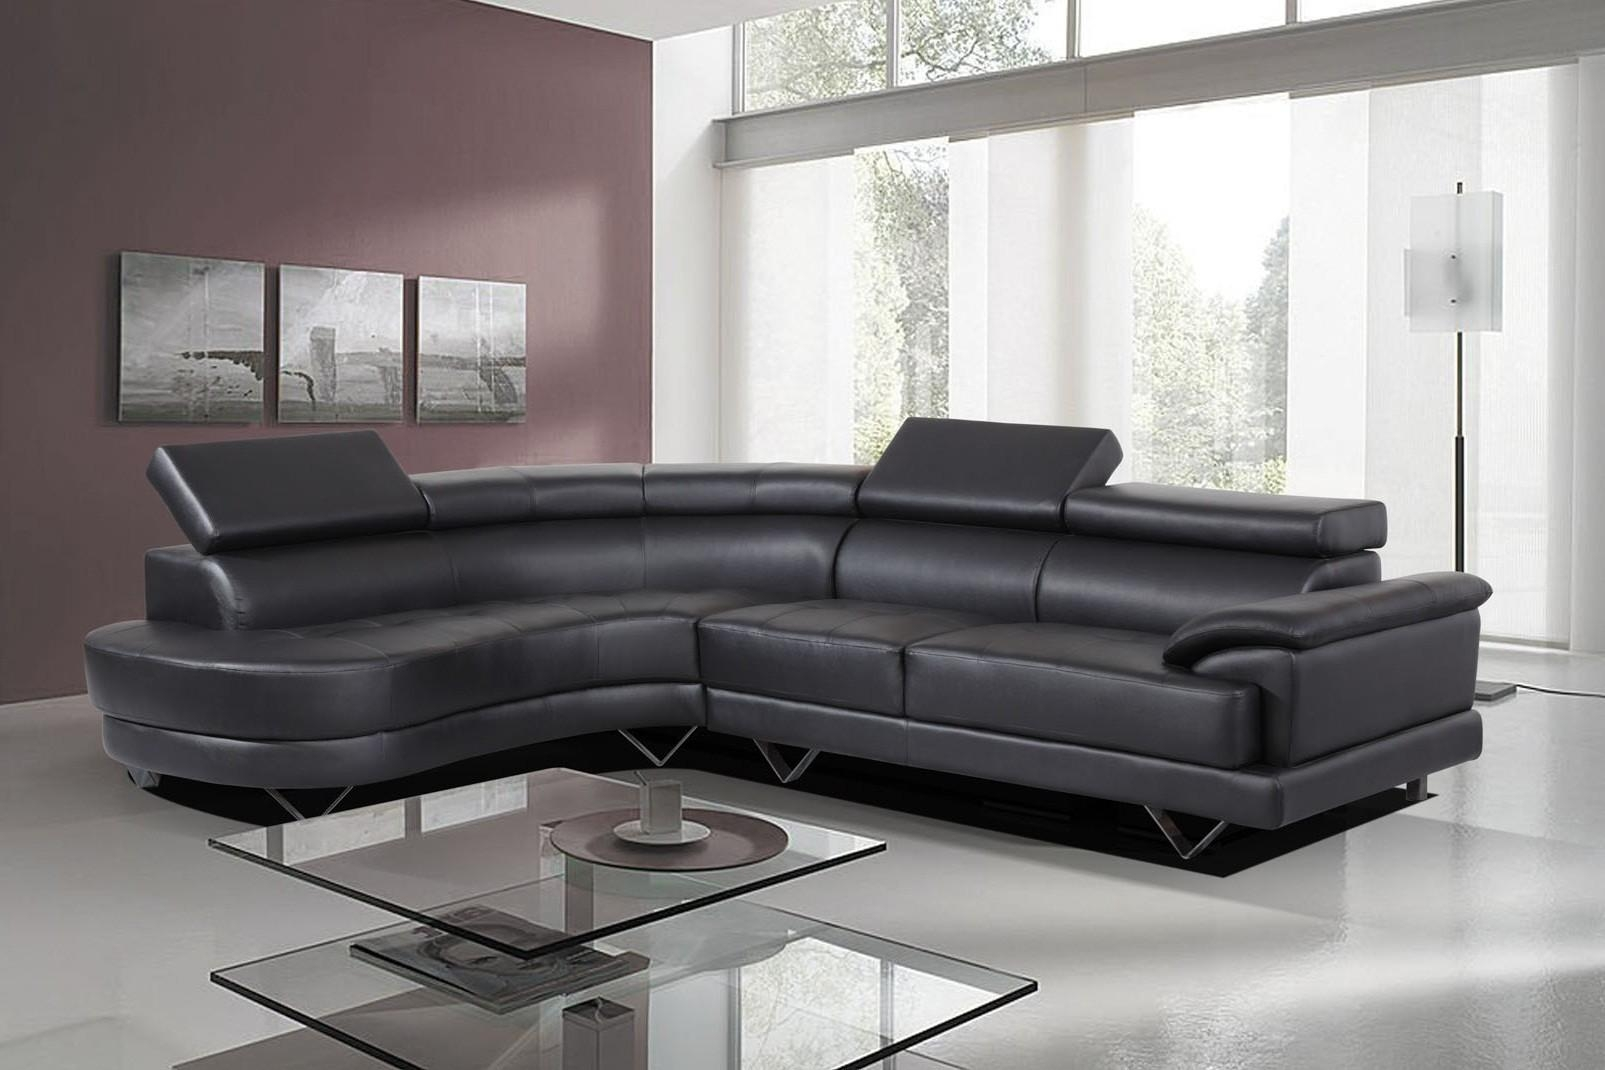 Corner Sofa Leather With Hand 13 Throughout Large Black Leather Corner Sofas (View 4 of 22)